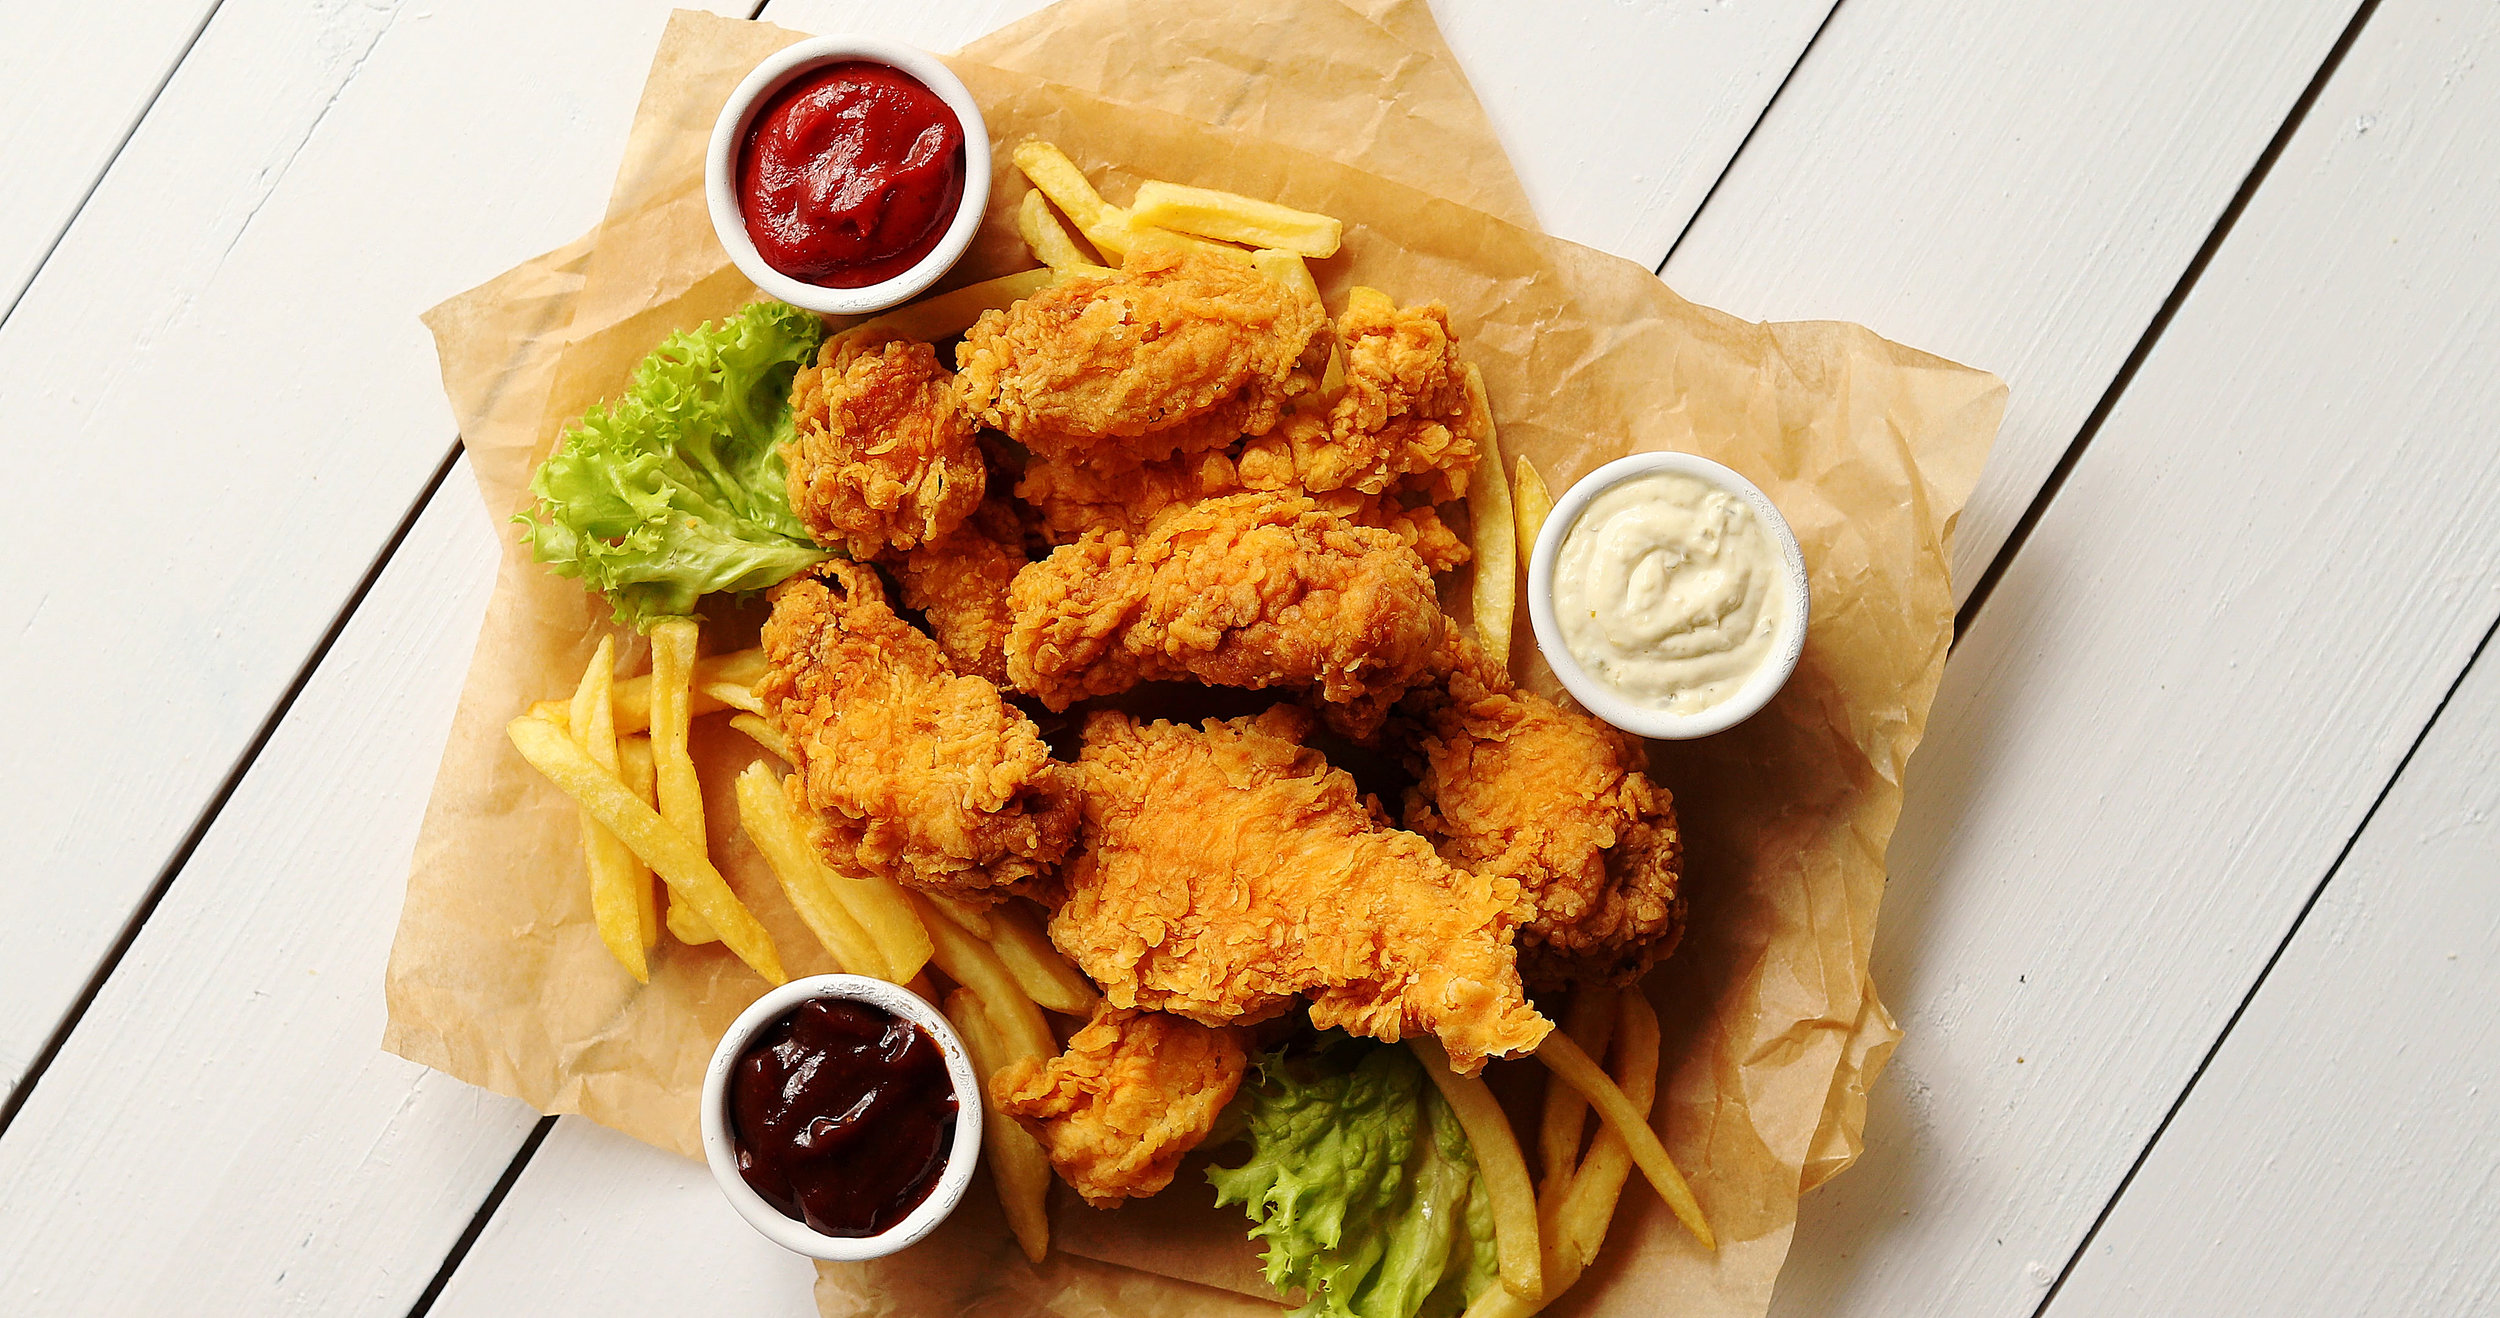 sauces-and-lettuce-near-french-fries-and-chicken-W4E6BNS.jpg